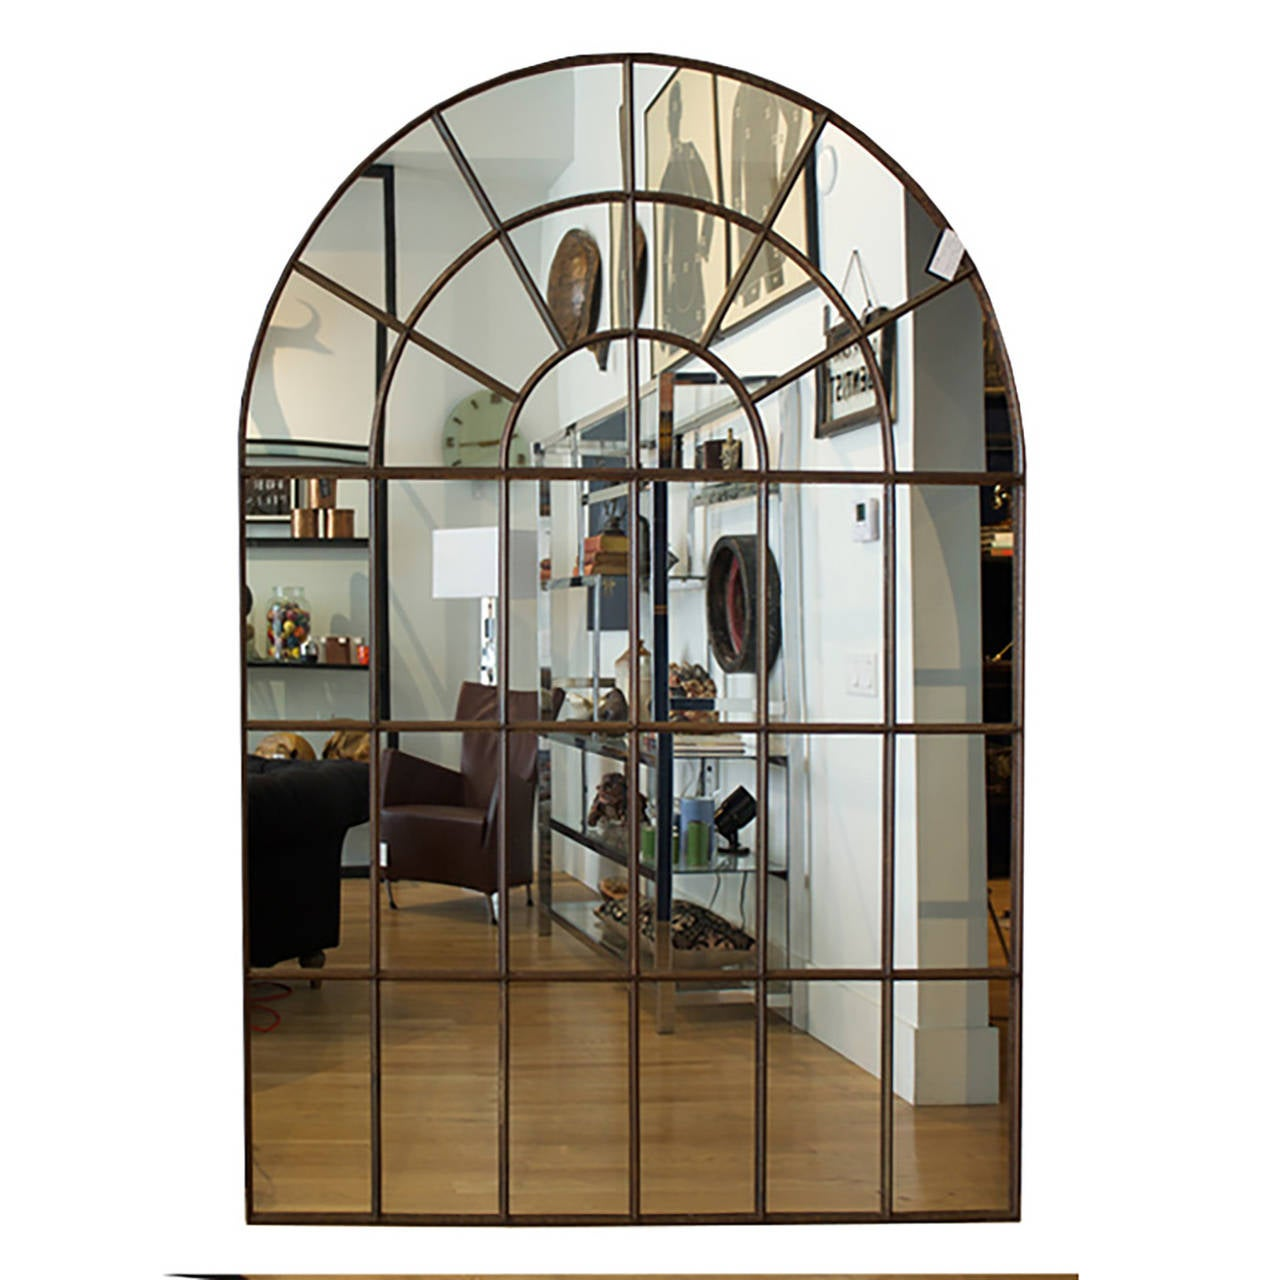 Cast iron palladian window mirror image 6 for Full length window mirror